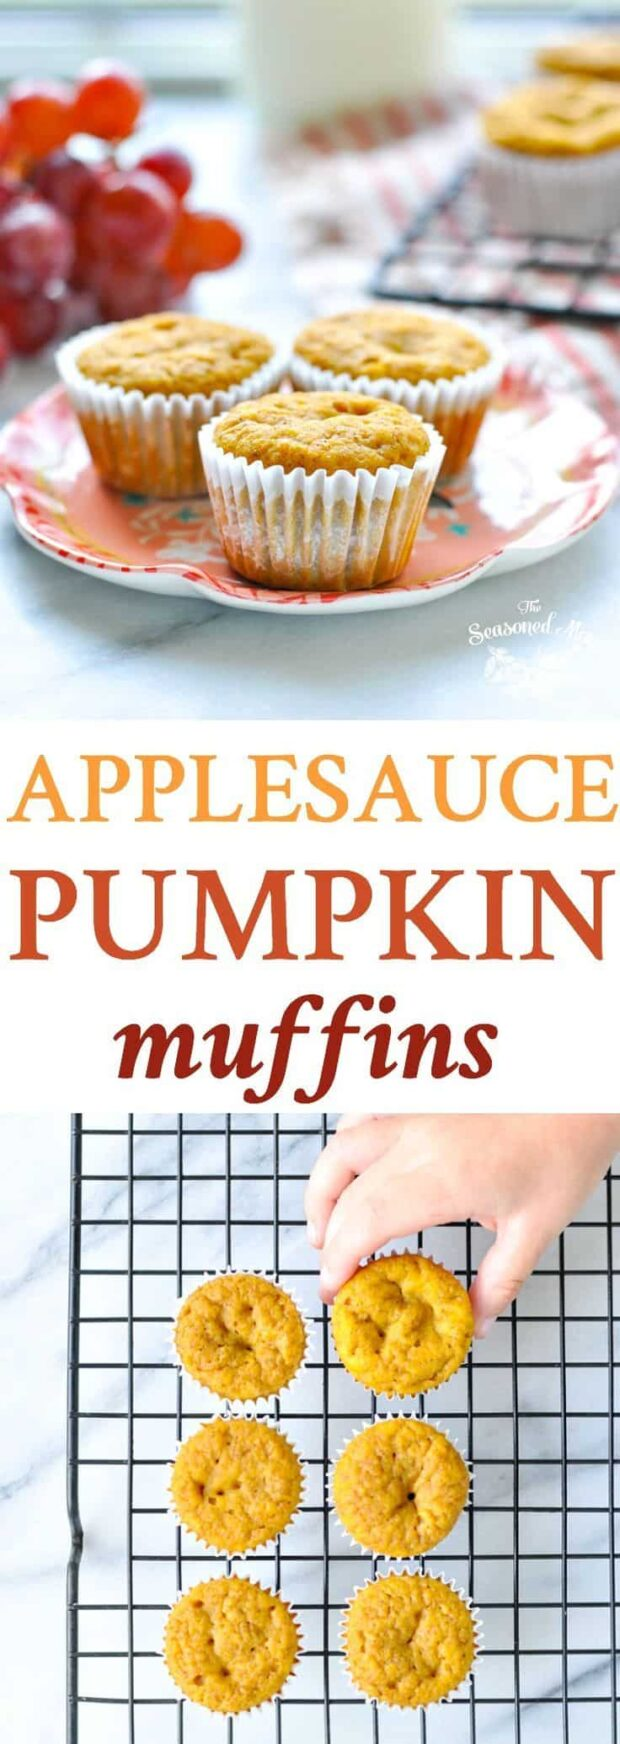 13 Delicious Fall Muffin Recipes - muffin top, Muffin Recipes, Fall Muffins, Fall Muffin Recipes, Fall Muffin, cozy fall recipes